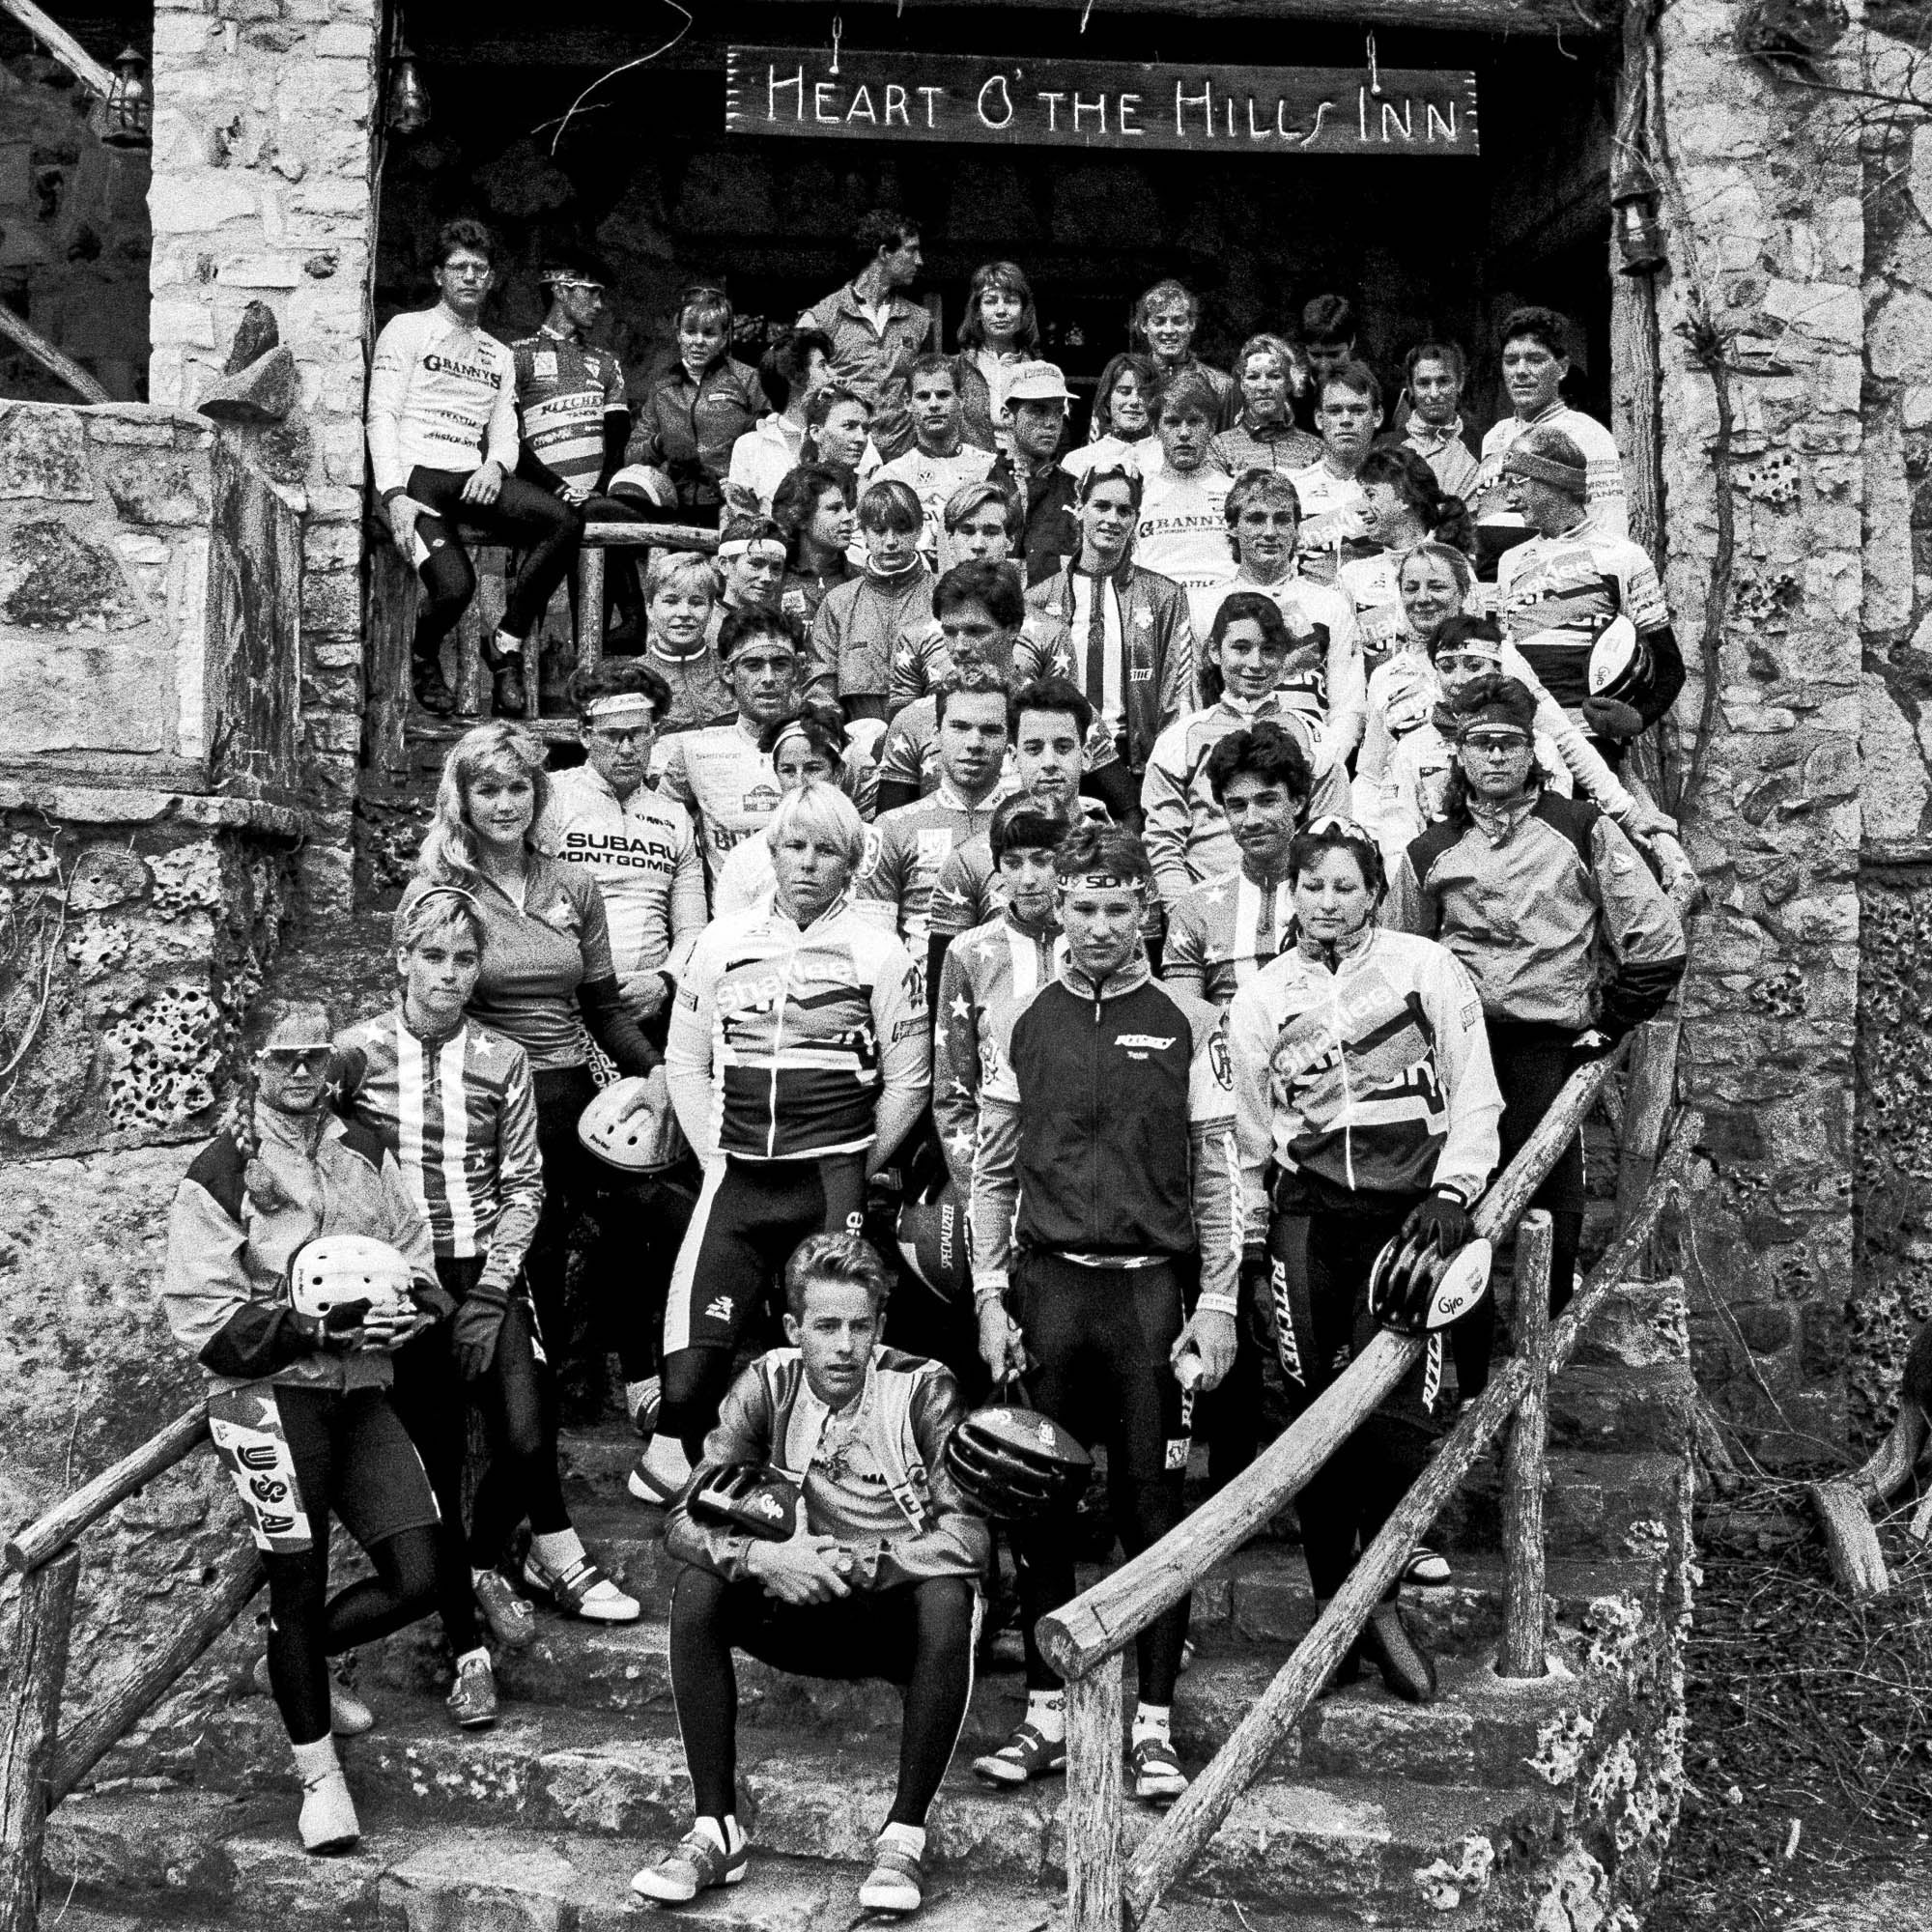 Black & white photo of many athletes in cycling gear standing on the steps of the Heart O' the Hills Inn